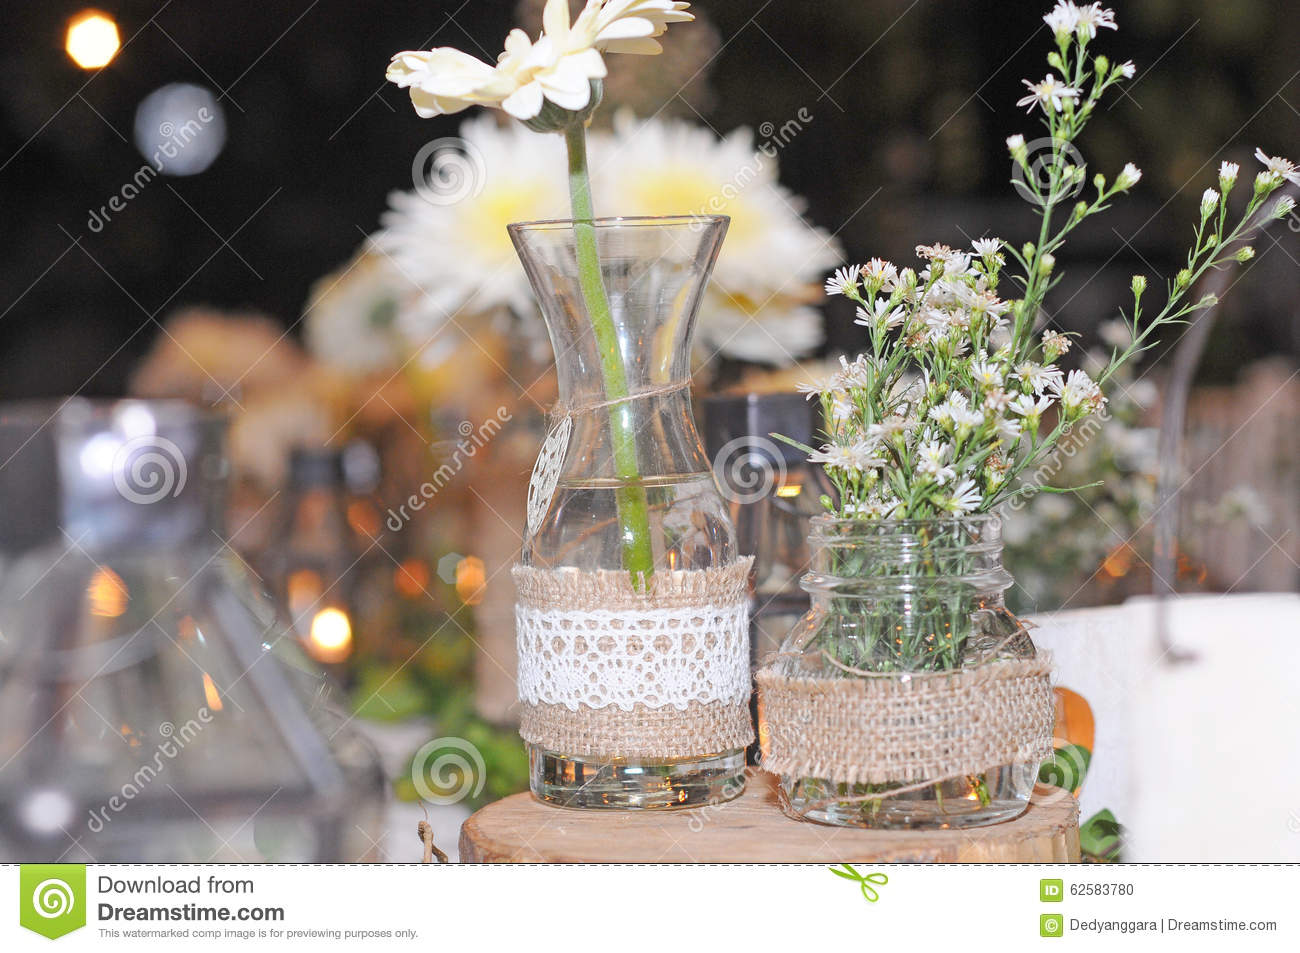 Dining Table Decoration Wedding Day Stock Photo Image Of Bouquet